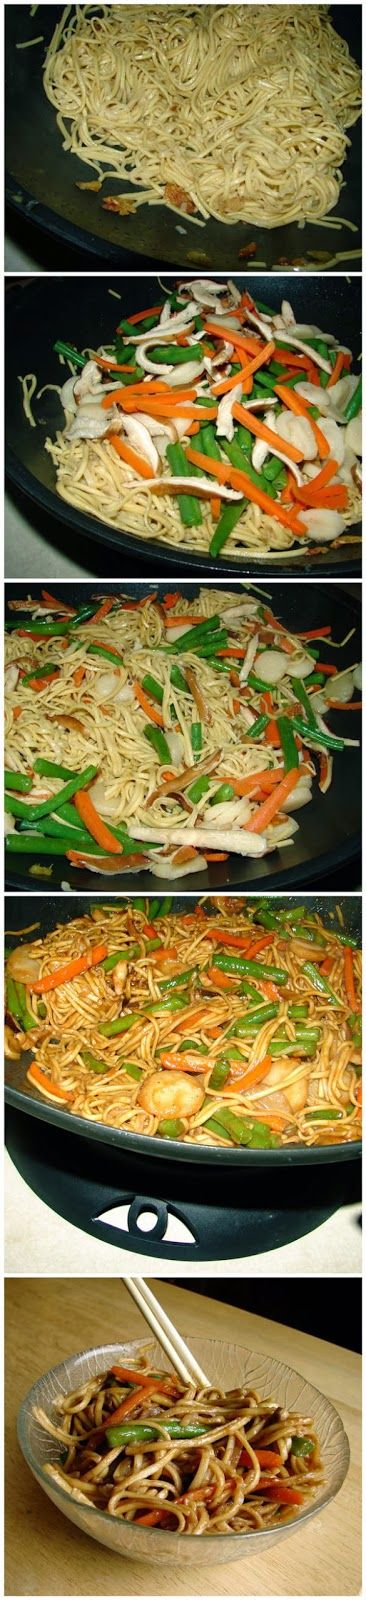 Vegetable Chow Mein - Red Sky Food---Vegetable Chow Mein - One of our favorite recipes. An extremely tasty dish, can be served with a main or on its own, we highly recommend this one! You can add more vegetables to this dish as you wish - See more at: http://www.redskyfood.com/2013/10/vegetable-chow-mein.html#sthash.OEjGQFmG.dpuf